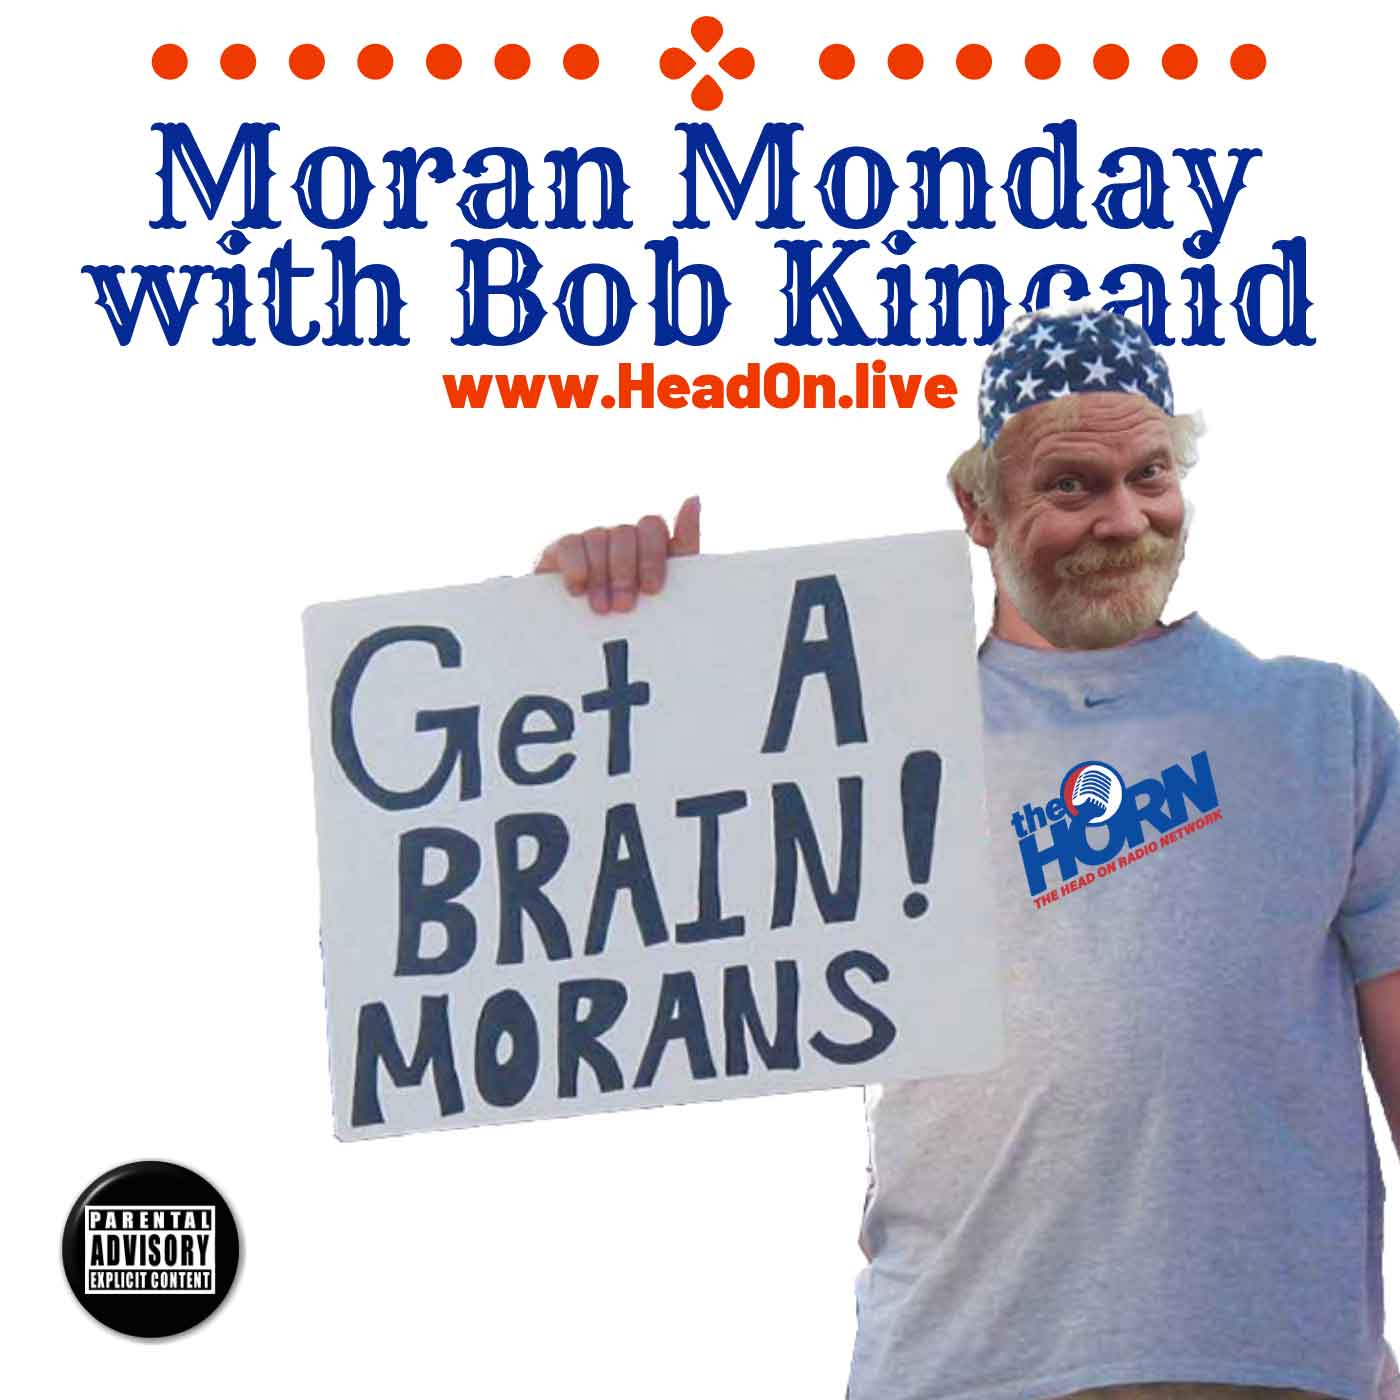 Moran Monday, Head-ON With Bob Kincaid, 20 January 2020